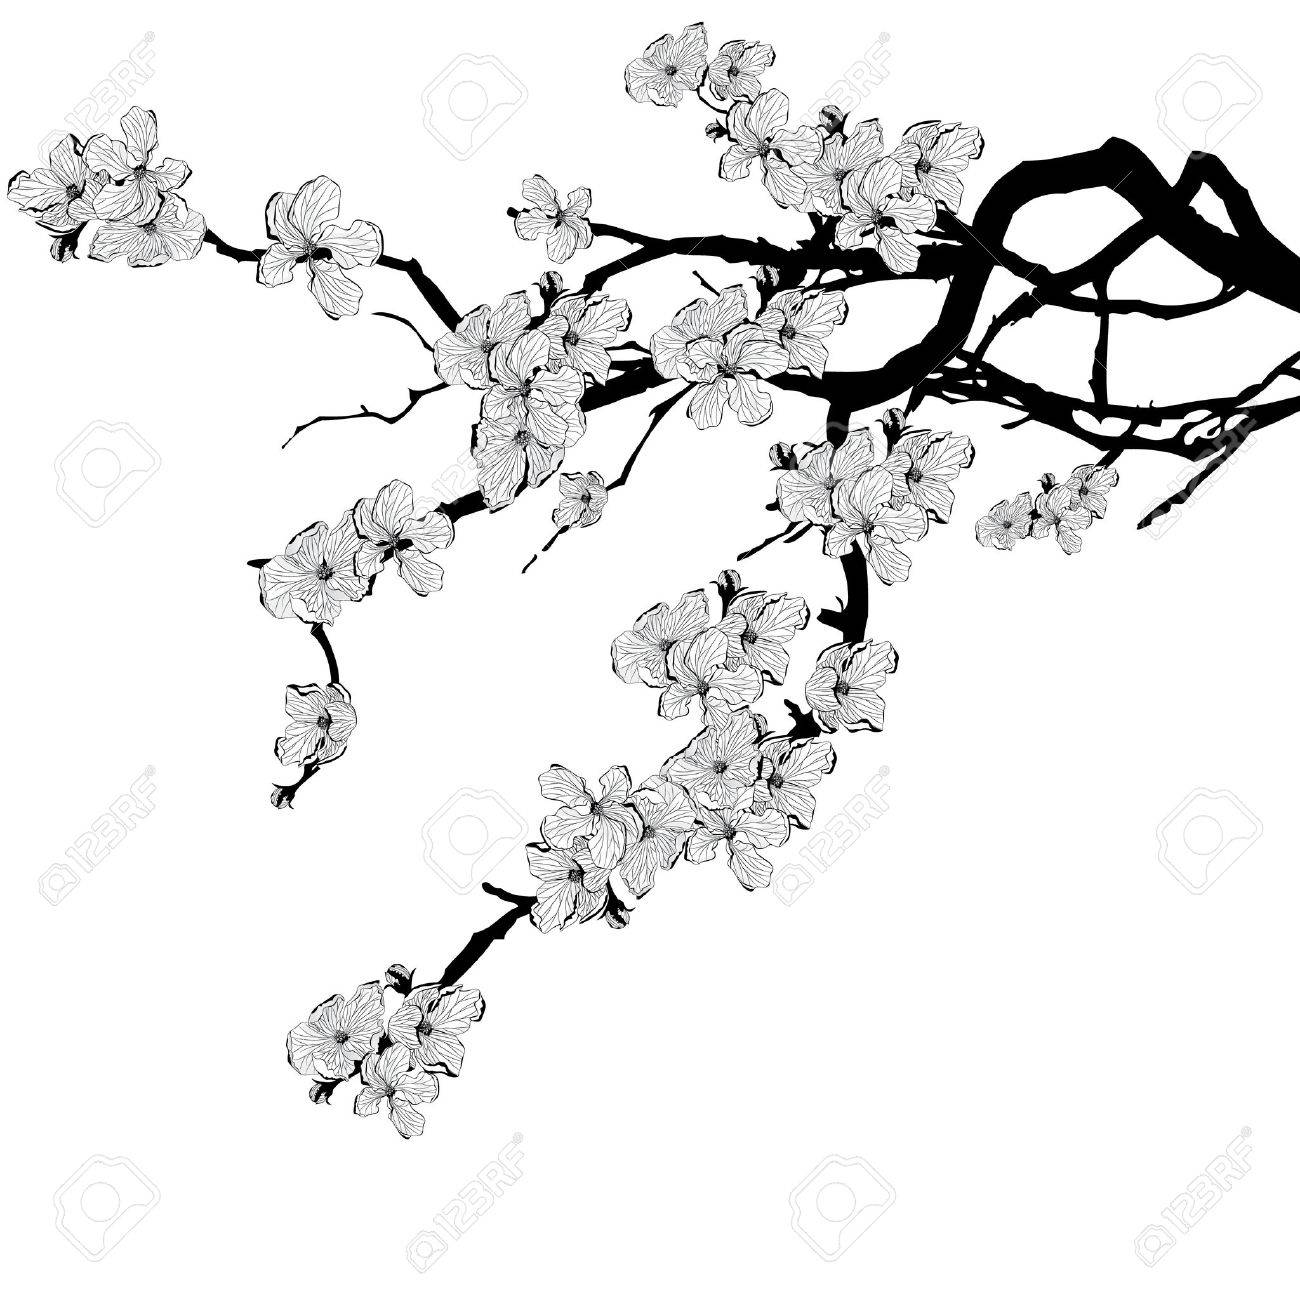 vector illustration of branch of cherry tree in black and white colors - 54335642